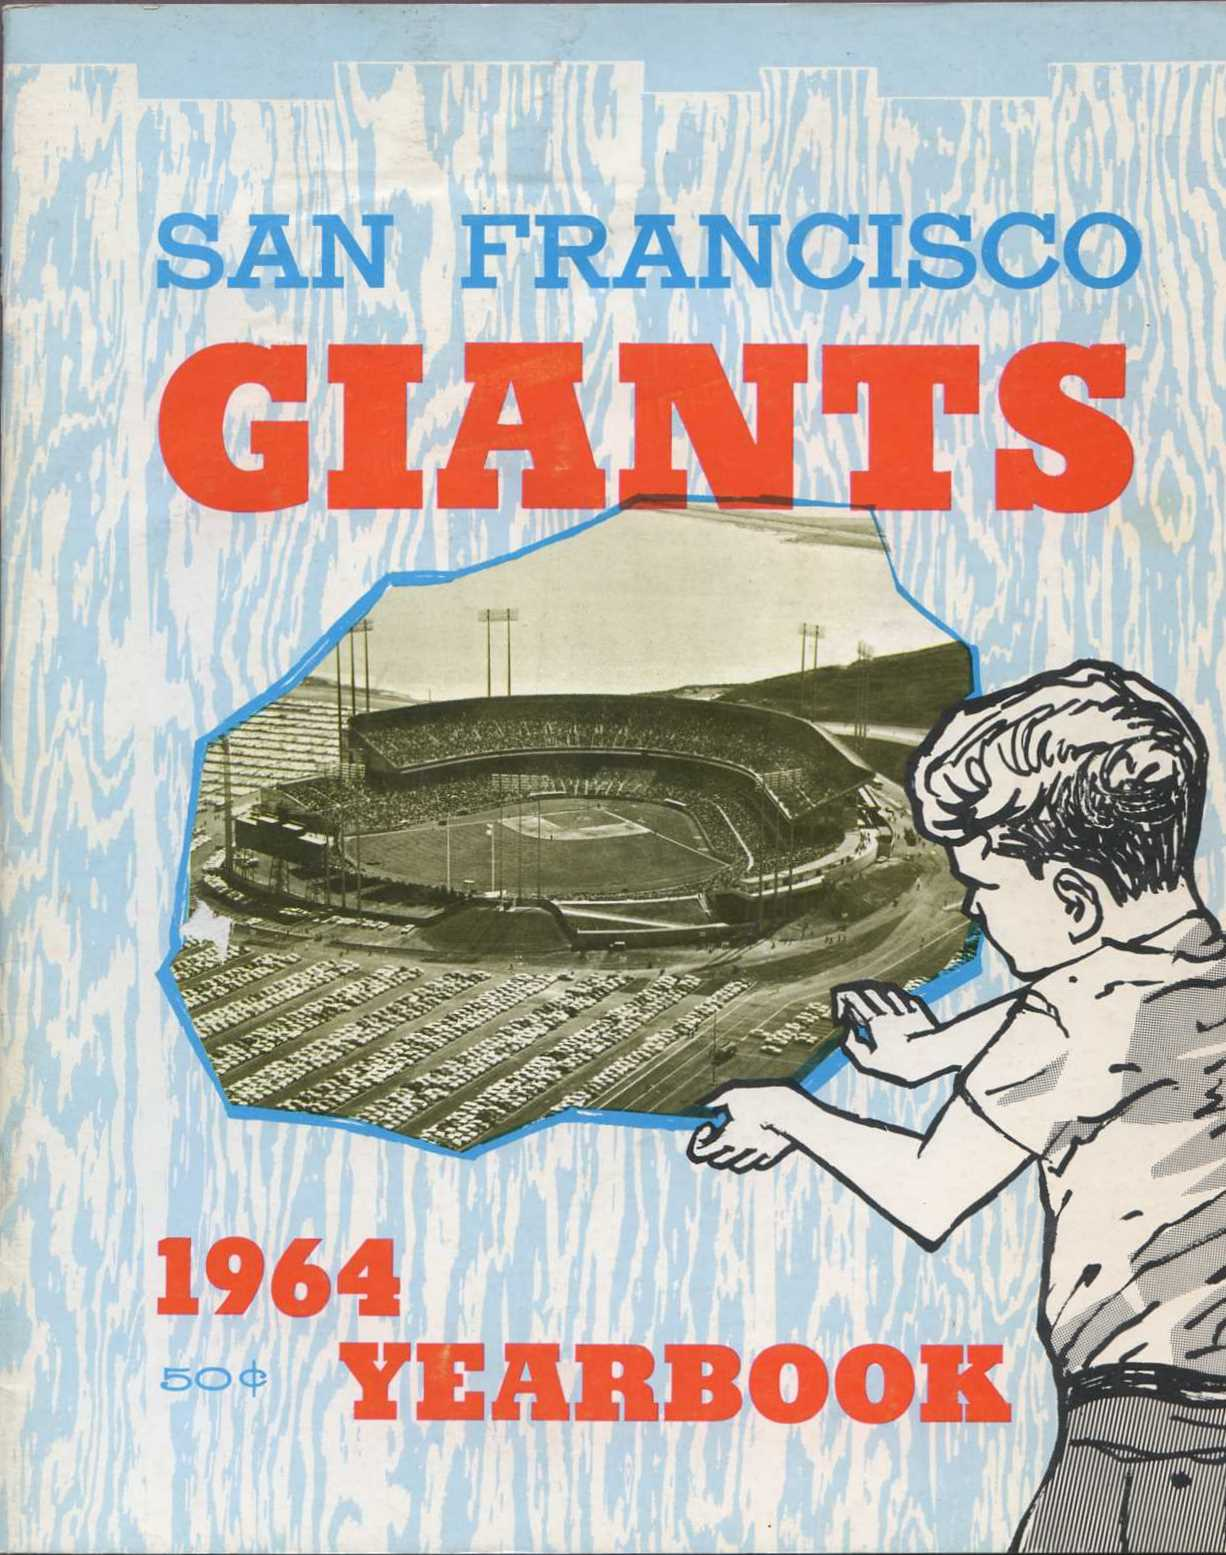 1964 San Francisco Giants Yearbook - Child looking at Candlestick